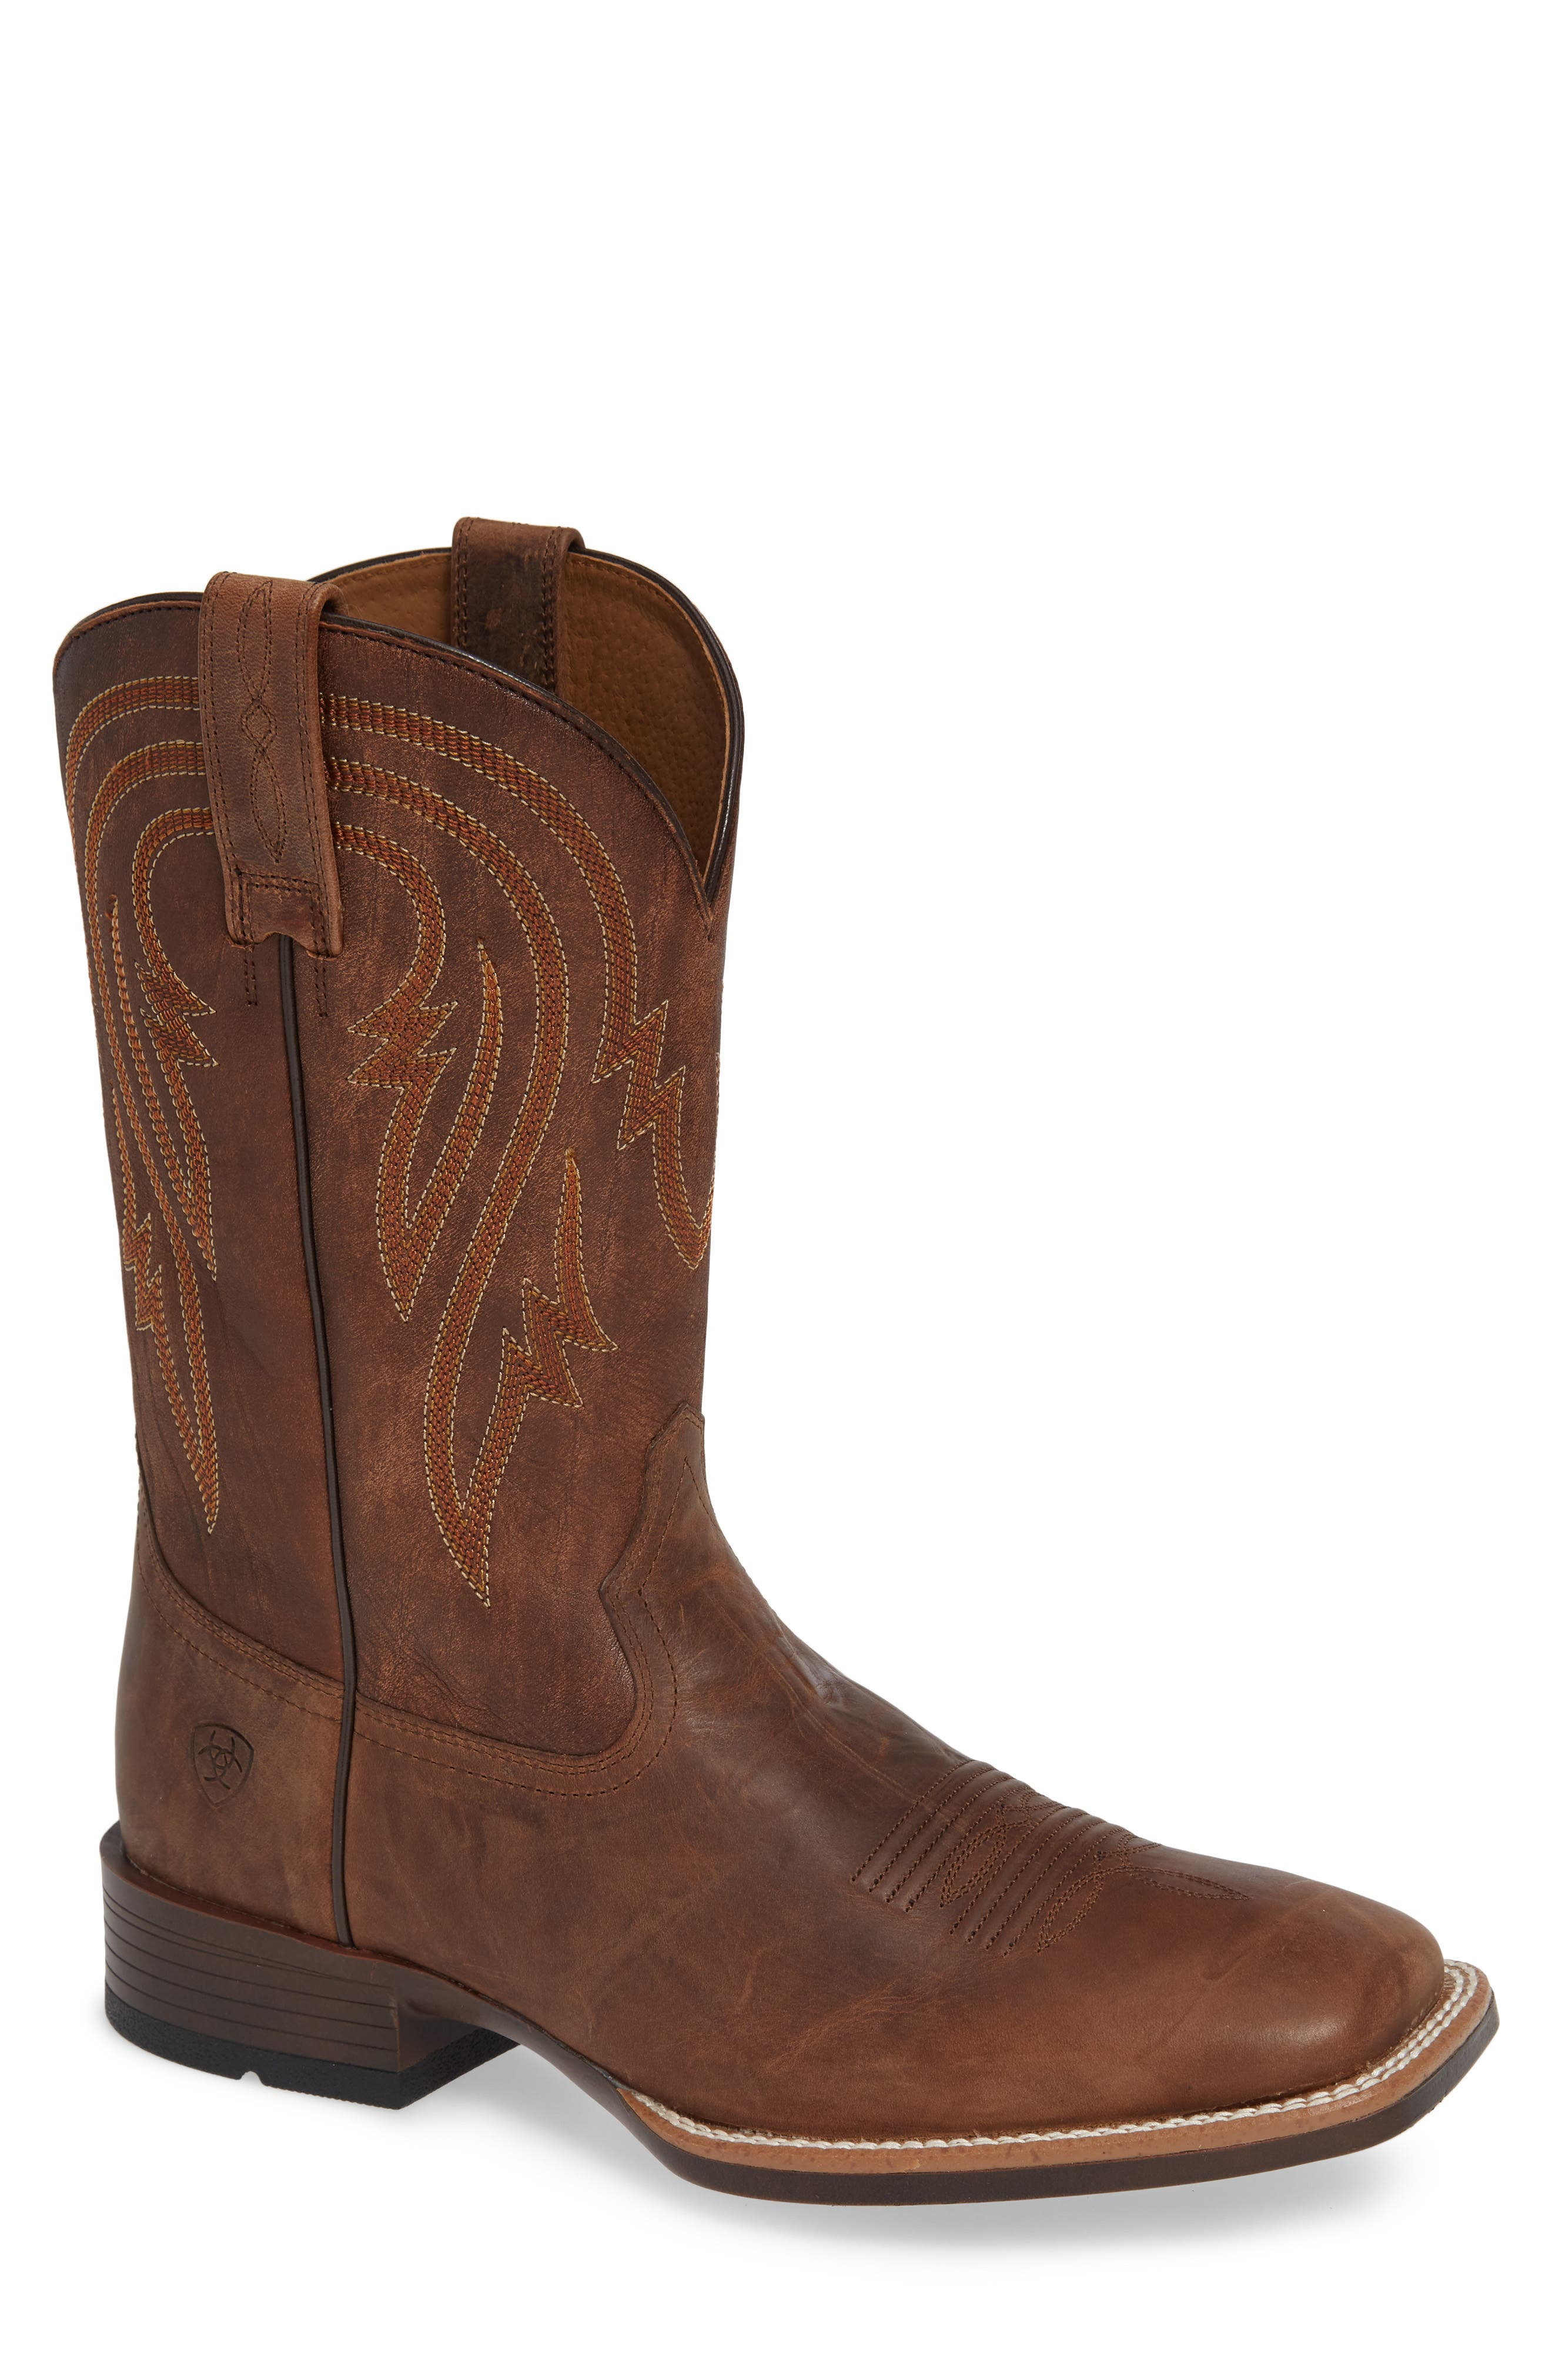 ARIAT, Plano Cowboy Boot, Main thumbnail 1, color, TANNIN/ TACK ROM LEATHER